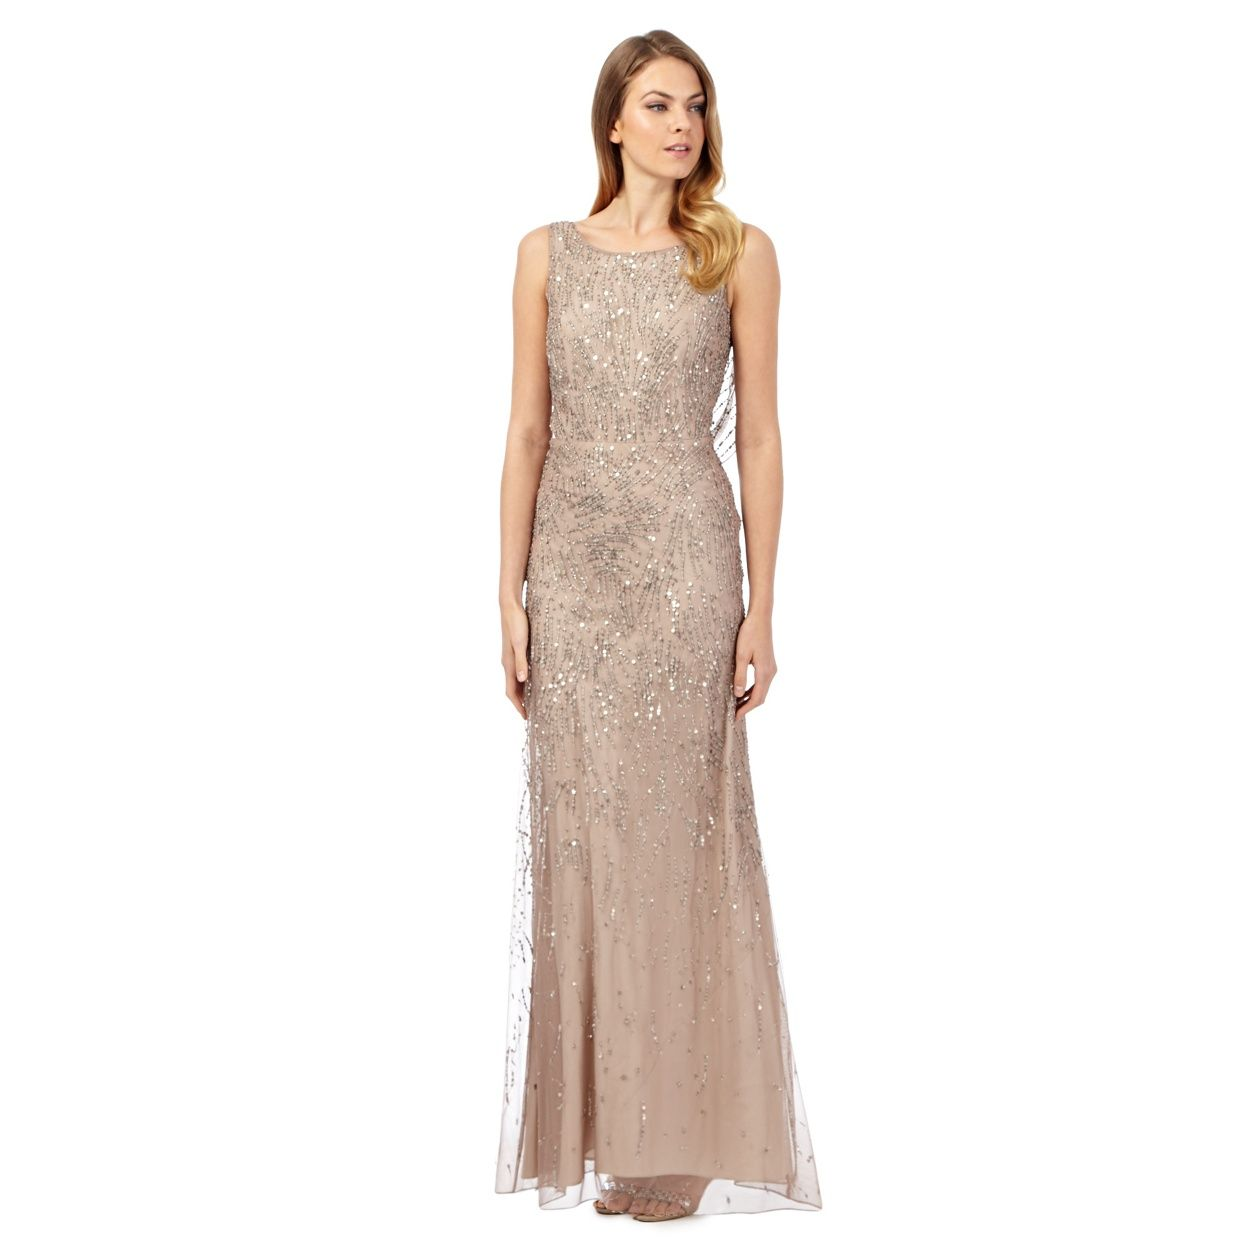 Debut bronze eclipse hand embellished evening dress at debut bronze eclipse hand embellished evening dress at debenhams bridesmaid ombrellifo Image collections